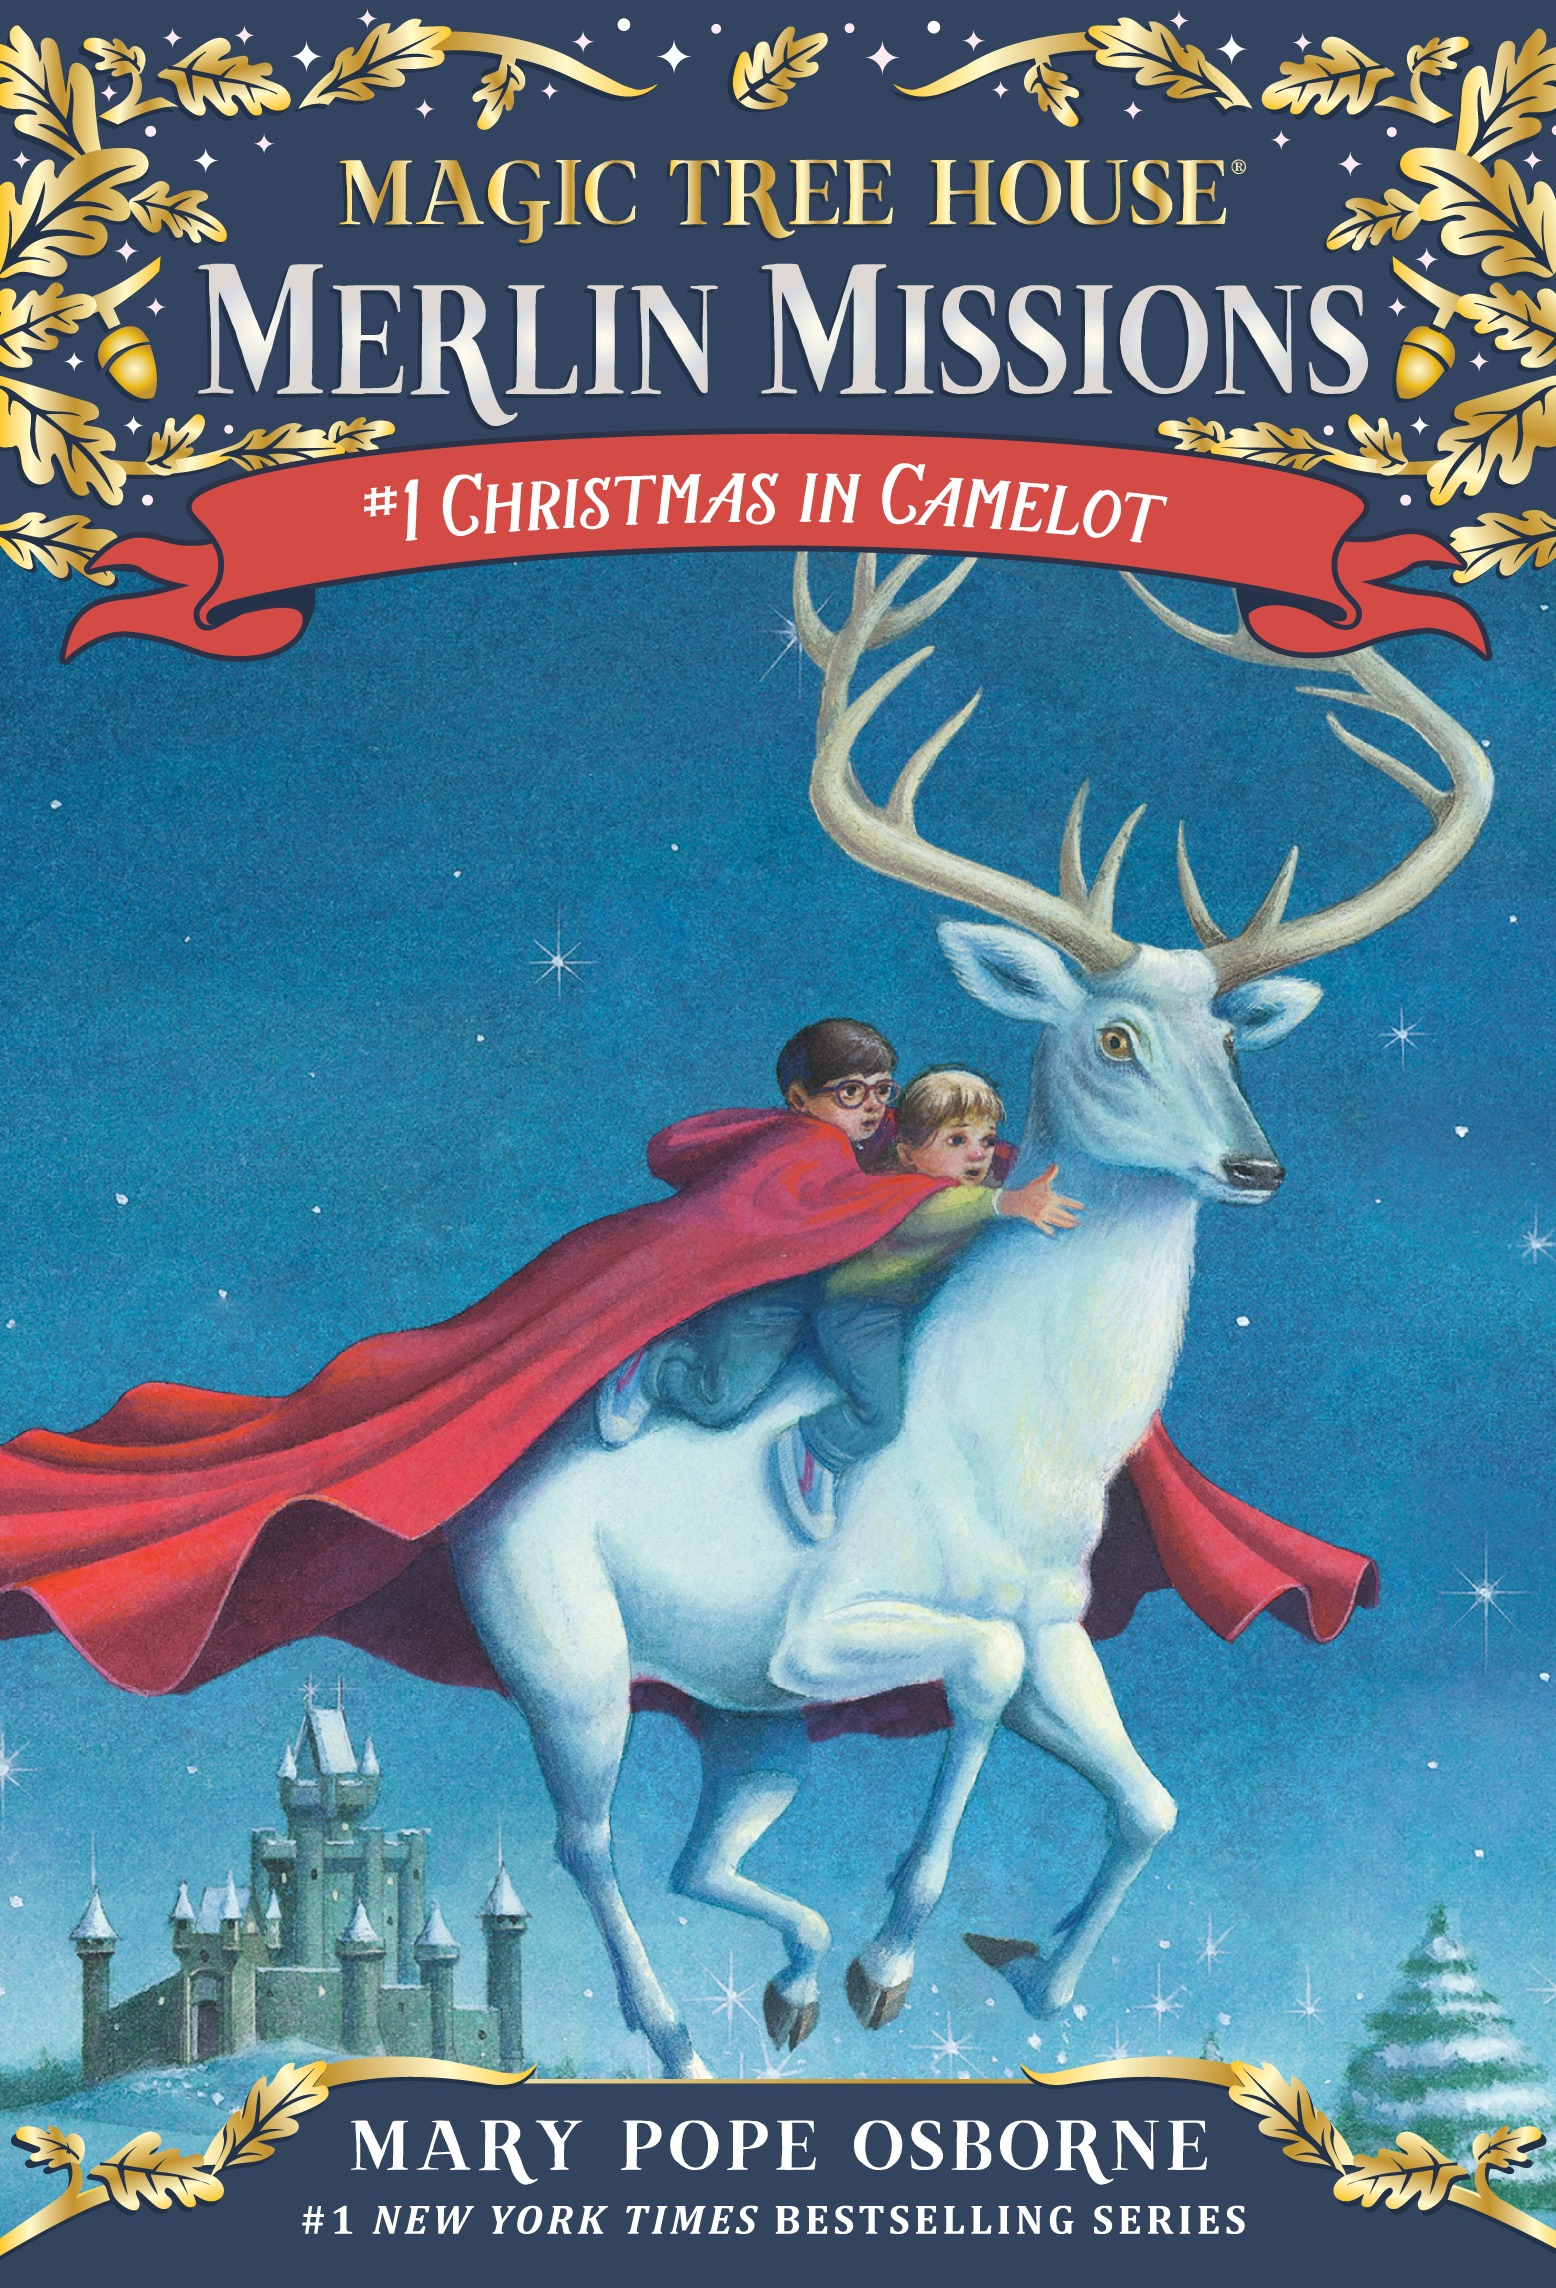 Magic Tree House Merlin Missions #1:Christmas in Camelot (PB) 대표이미지